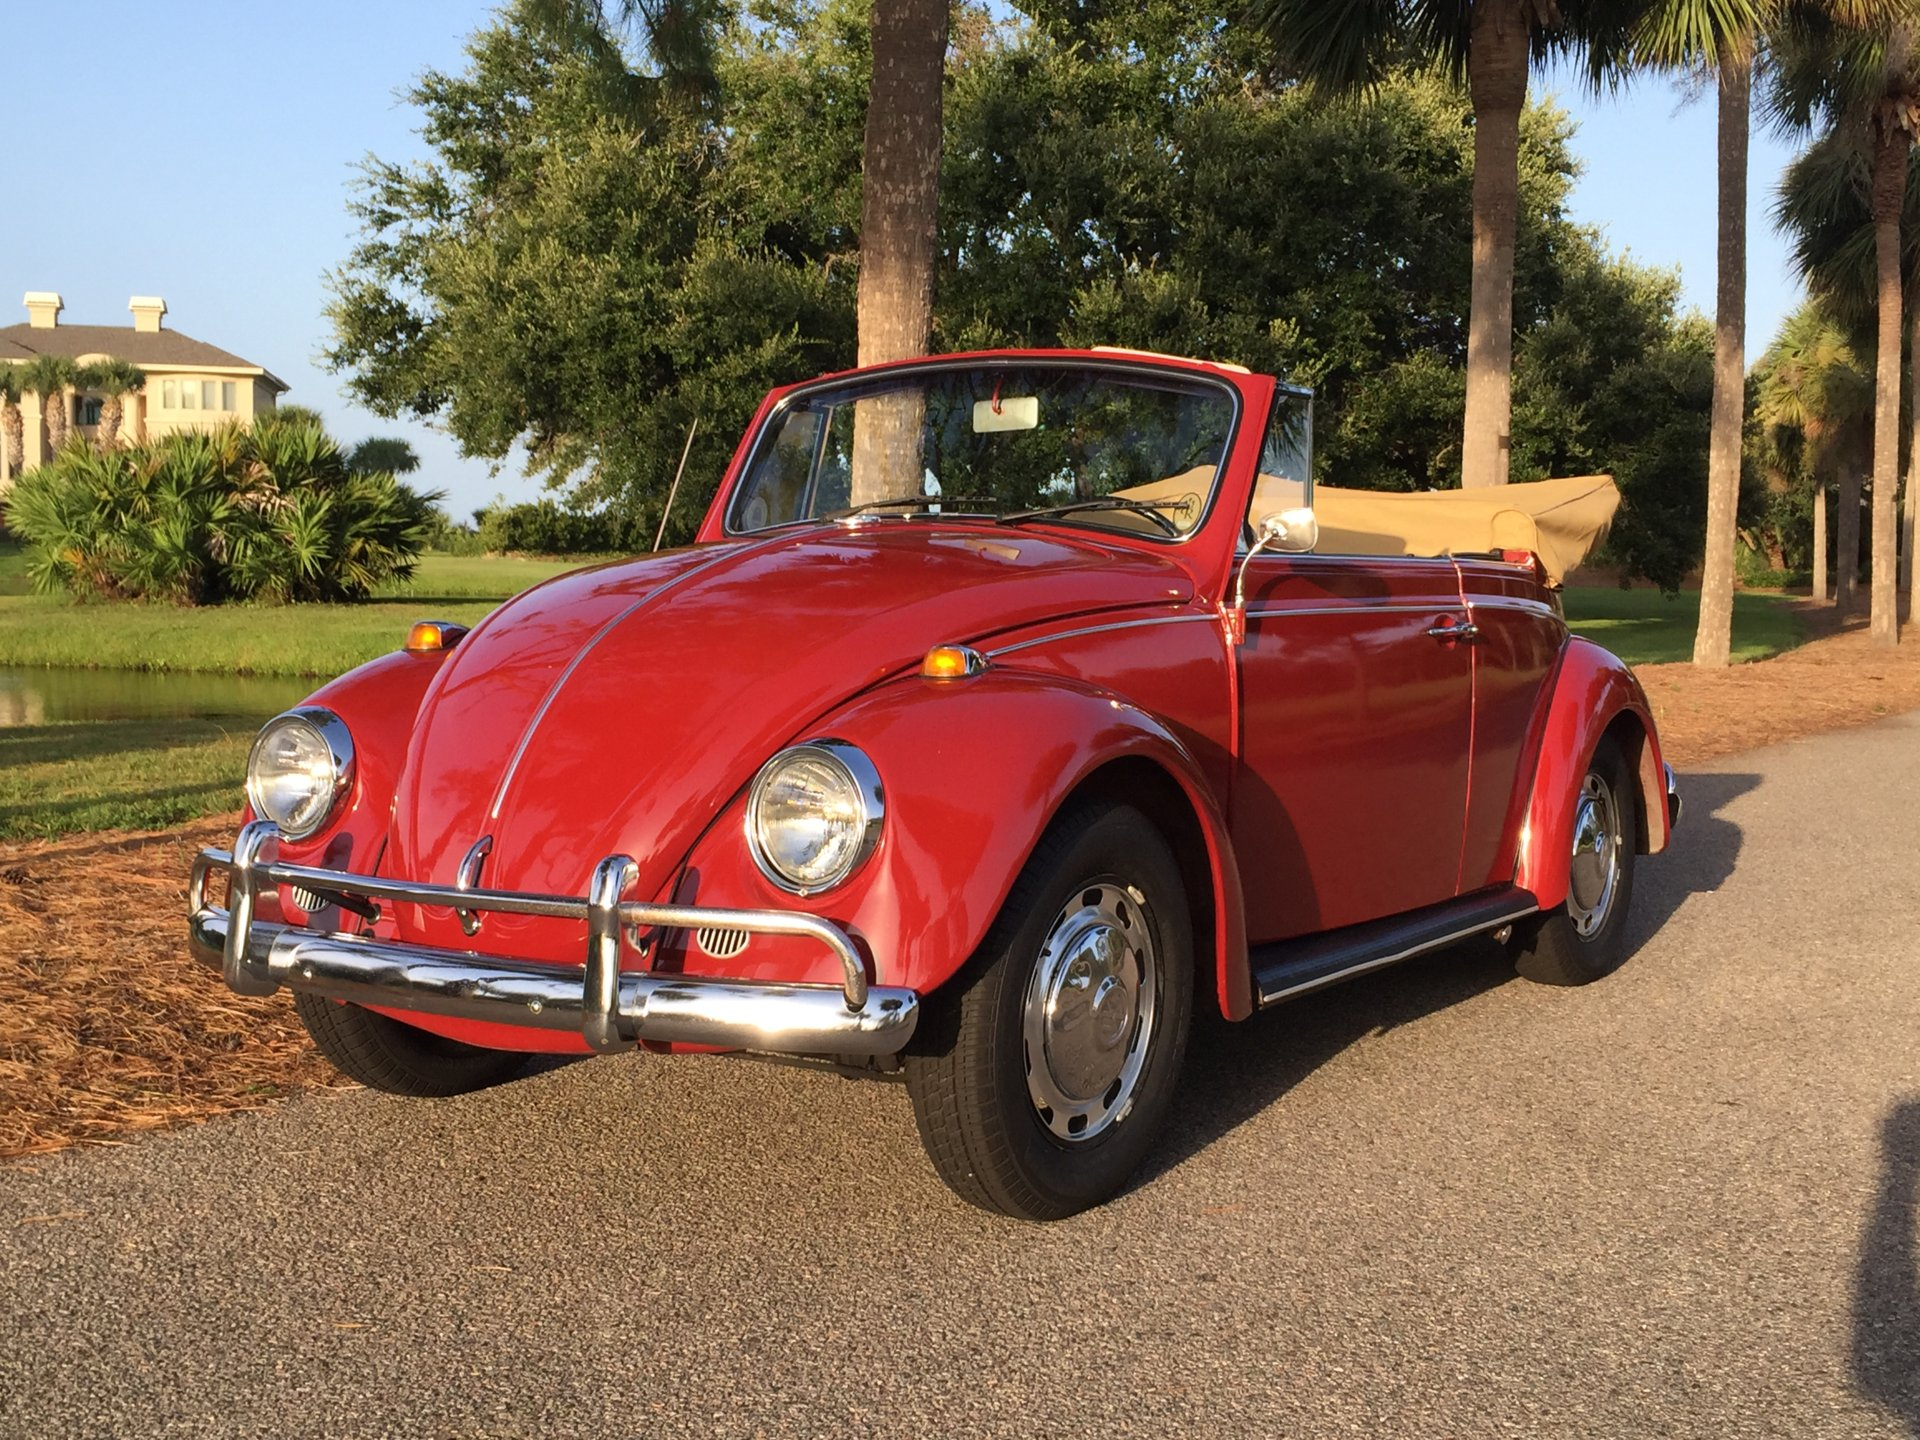 for sale 1967 volkswagen beetle convertible ih8mud forum. Black Bedroom Furniture Sets. Home Design Ideas